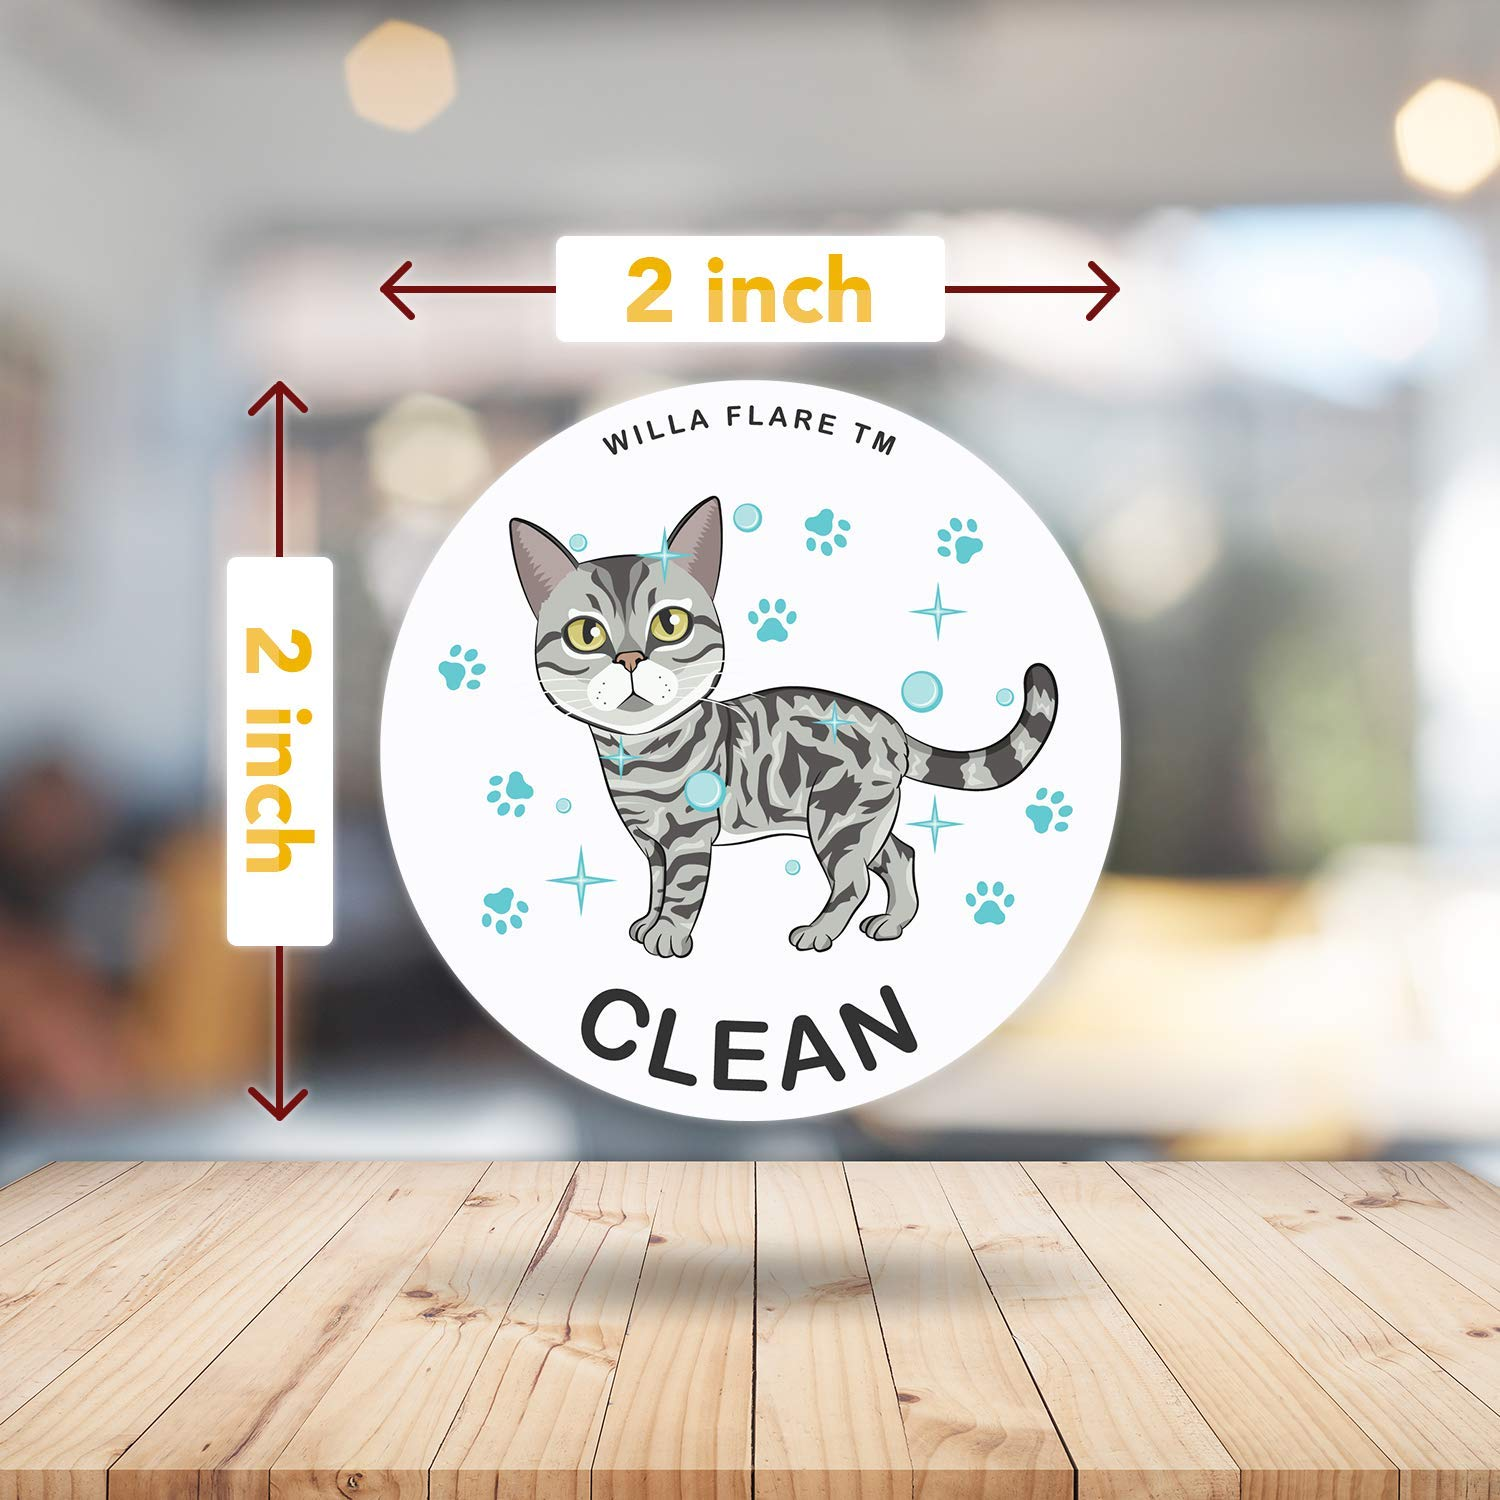 Amazon.com: Dishwasher Magnet Clean Dirty Sign | Kitchen Label for Home Organization | Funny Clean Dirty Dishwasher Magnet Cat Accessories and Funny Cat ...